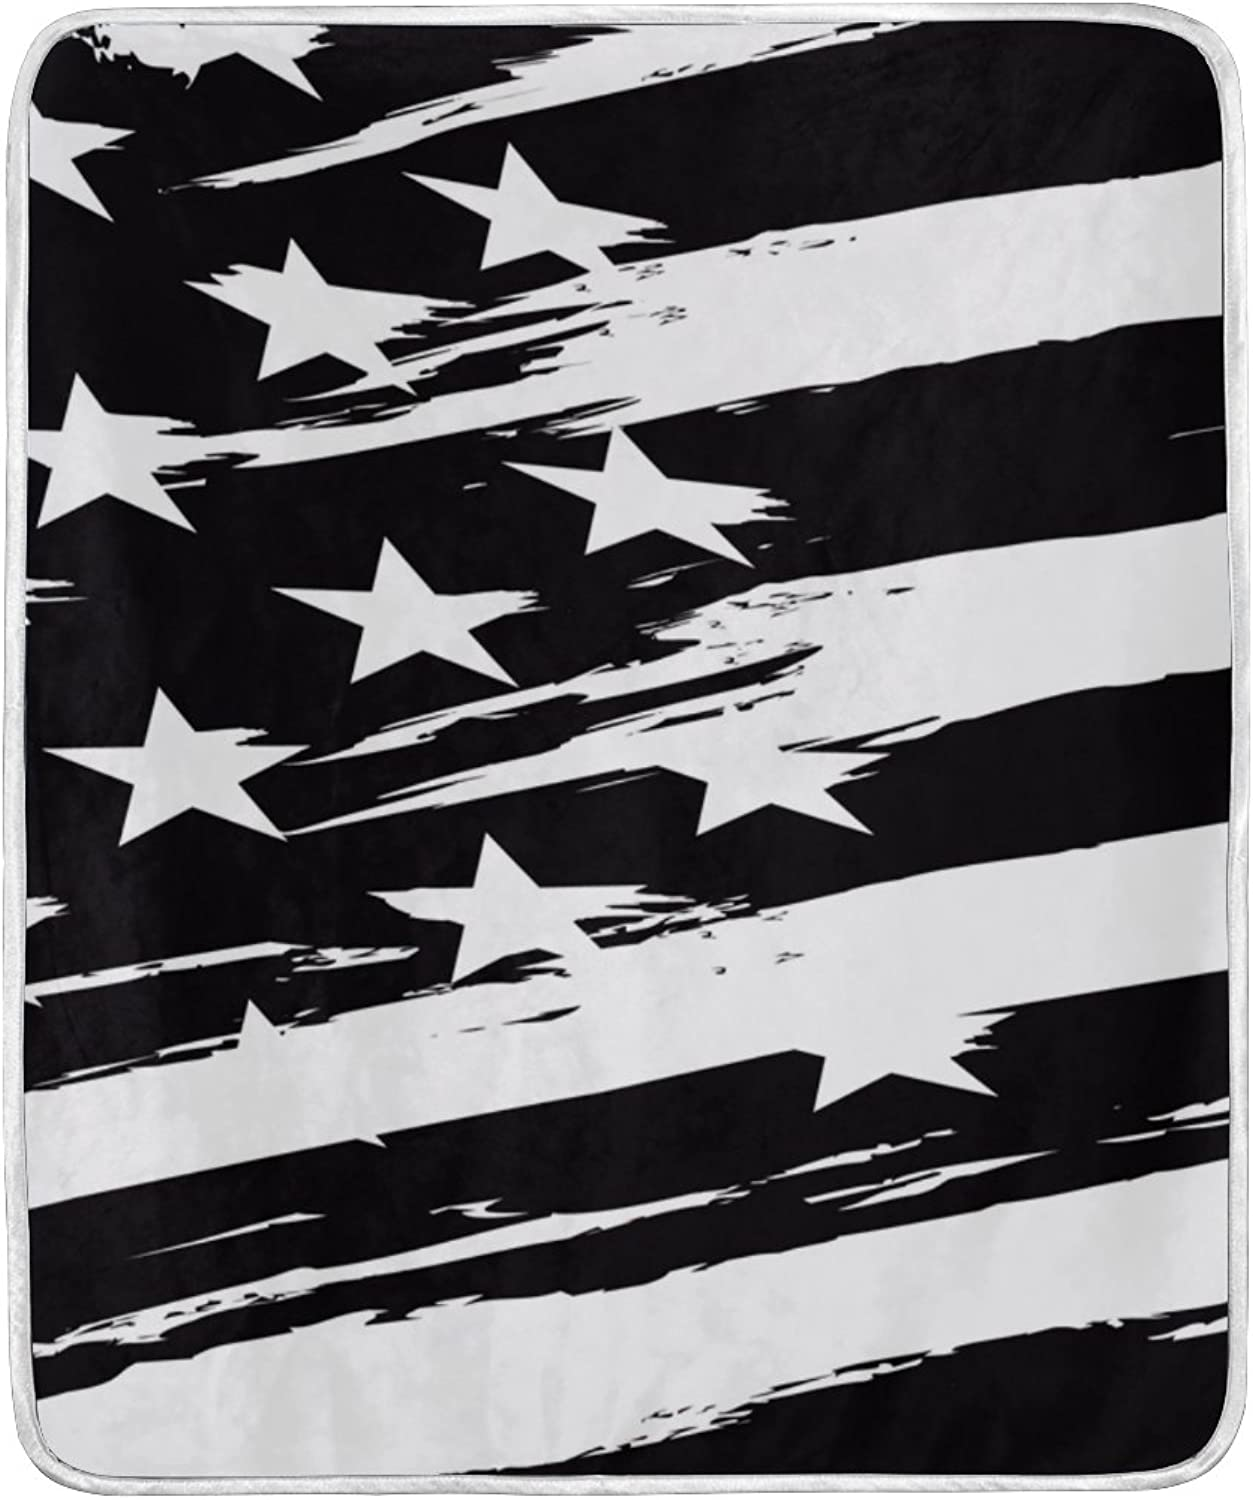 ALIREA Black And White American Flag Super Soft Warm Blanket Lightweight Throw Blankets for Bed Couch Sofa Travelling Camping 60 x 50 Inch for Kids Boys Girls